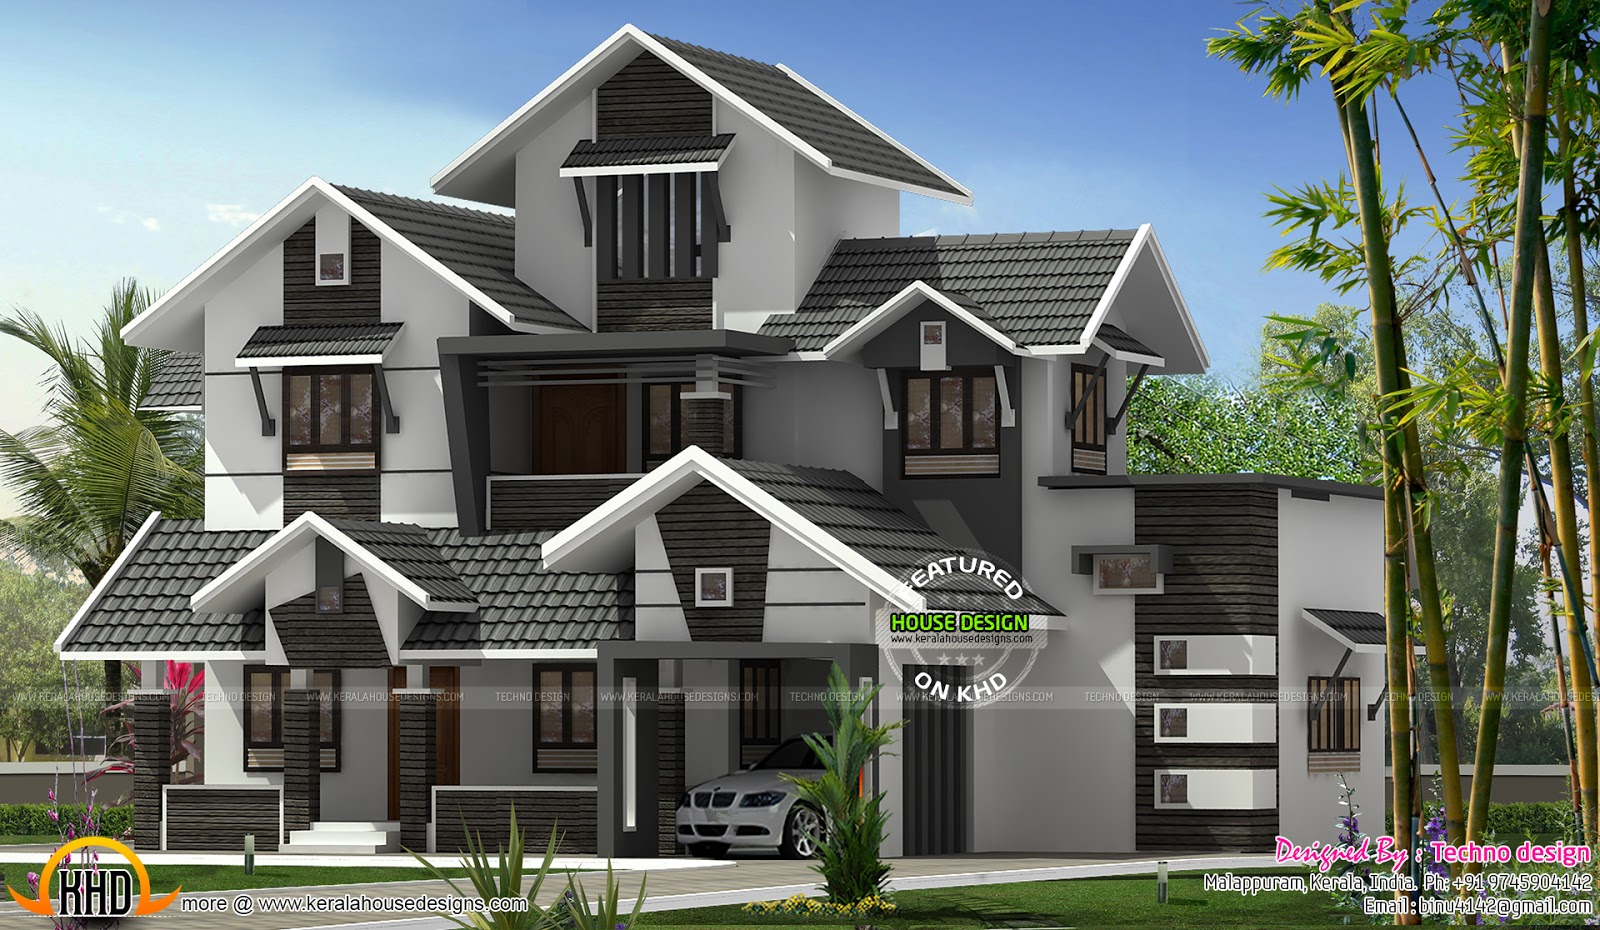 Modern kerala home design kerala home design and floor plans for Kerala modern house designs